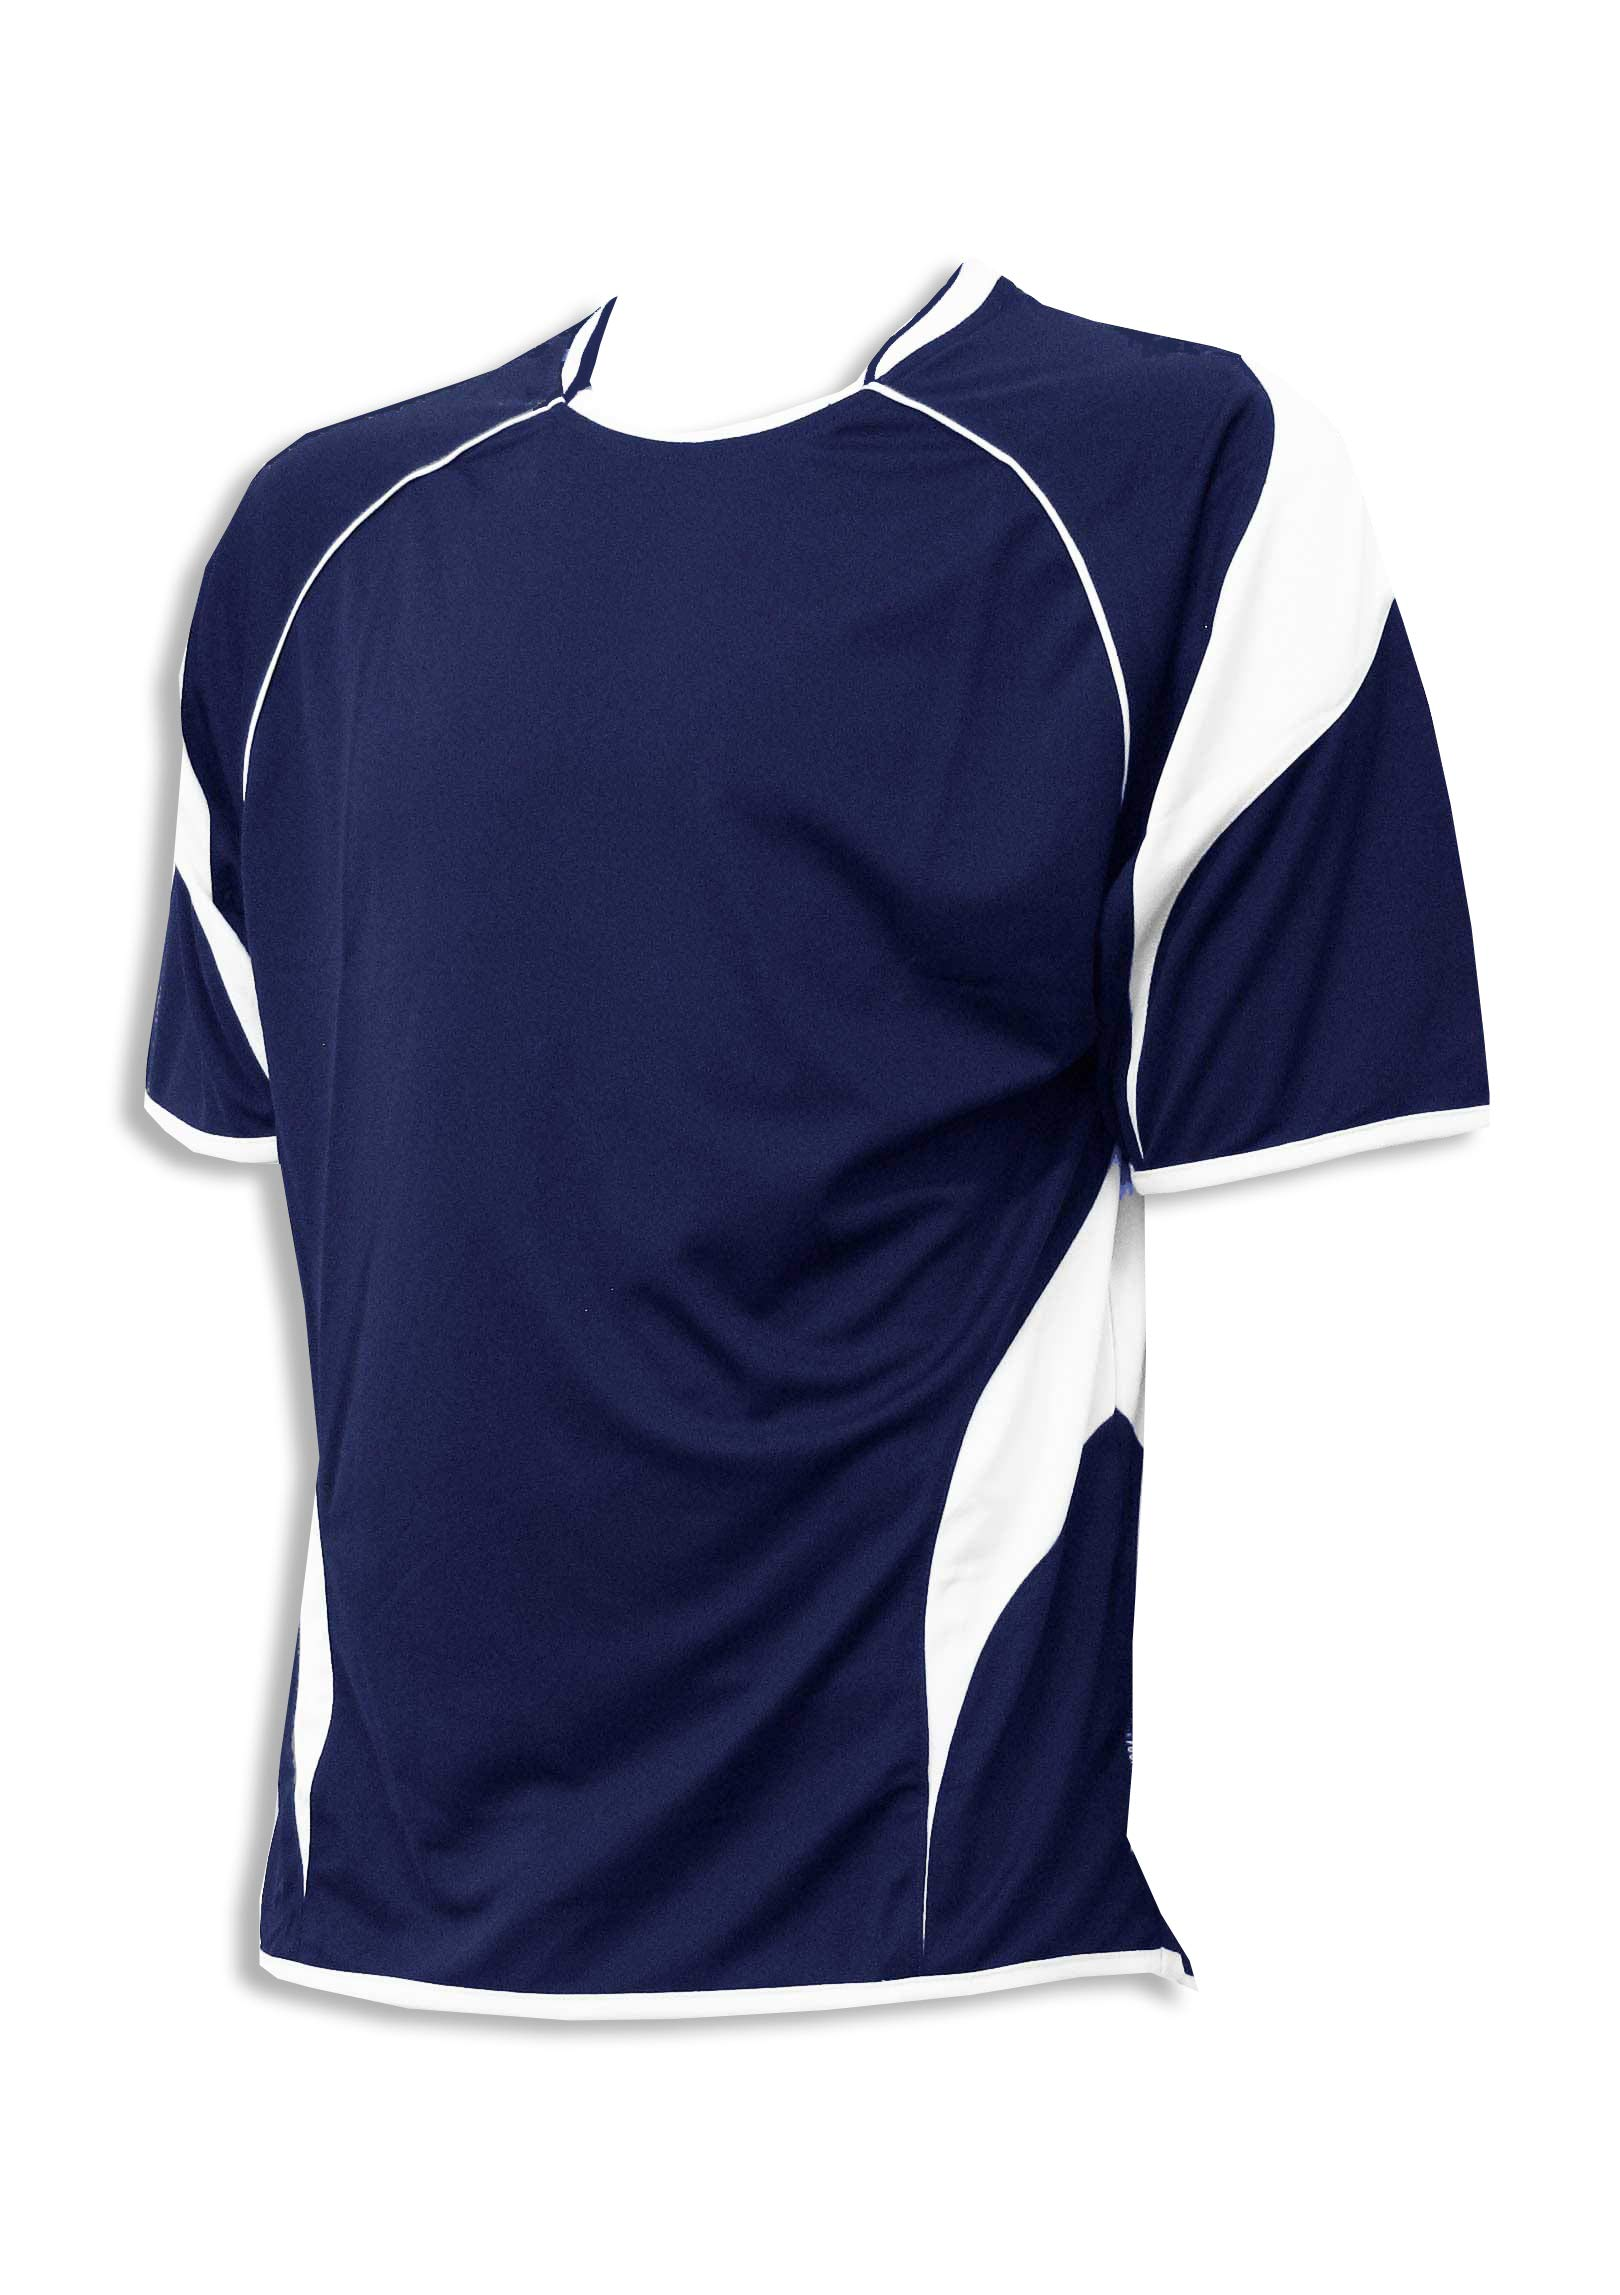 Velocity soccer jersey, personalized with player number